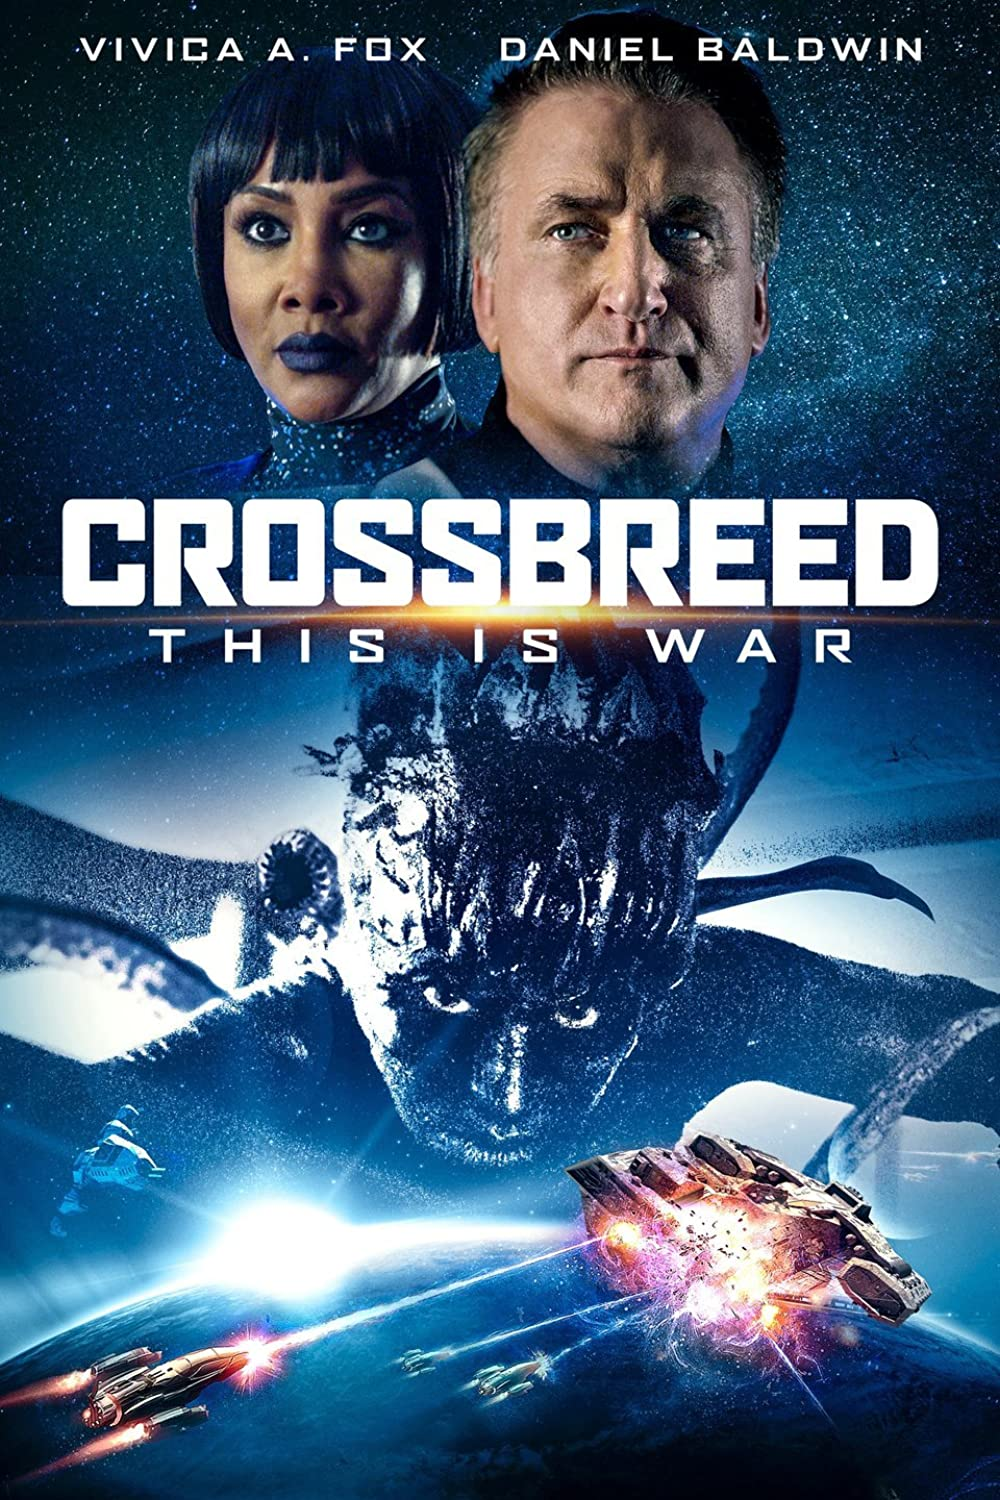 Crossbreed 2019 Hindi Dual Audio 1080p HDRip ESubs 1.52GB Download